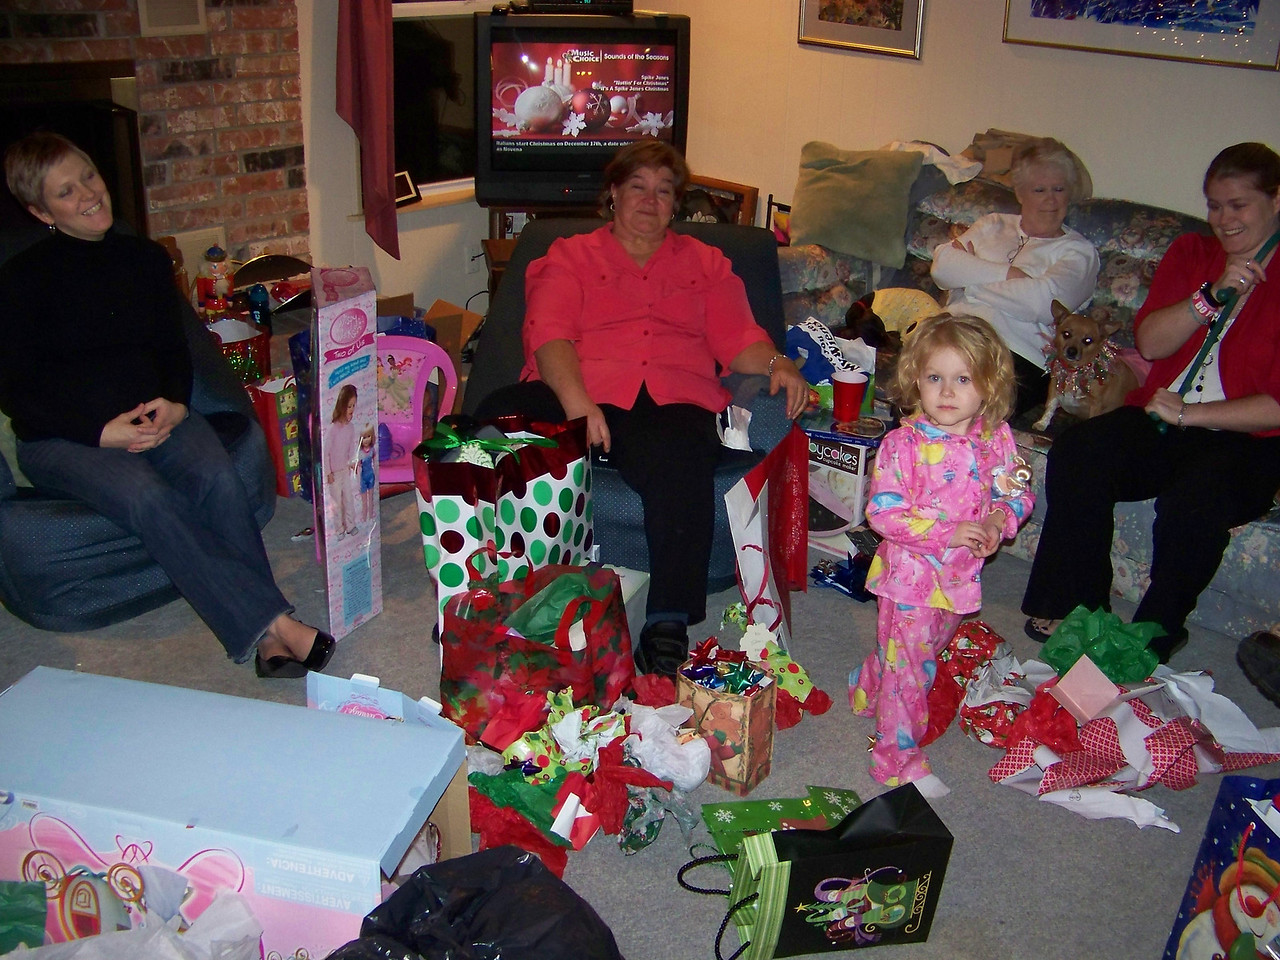 Kalyn, Wendy, Embyr, Sheri, and Jenna in the post-gift carnage.  Oscar and Roxy are both on the couch on either side of Sheri.